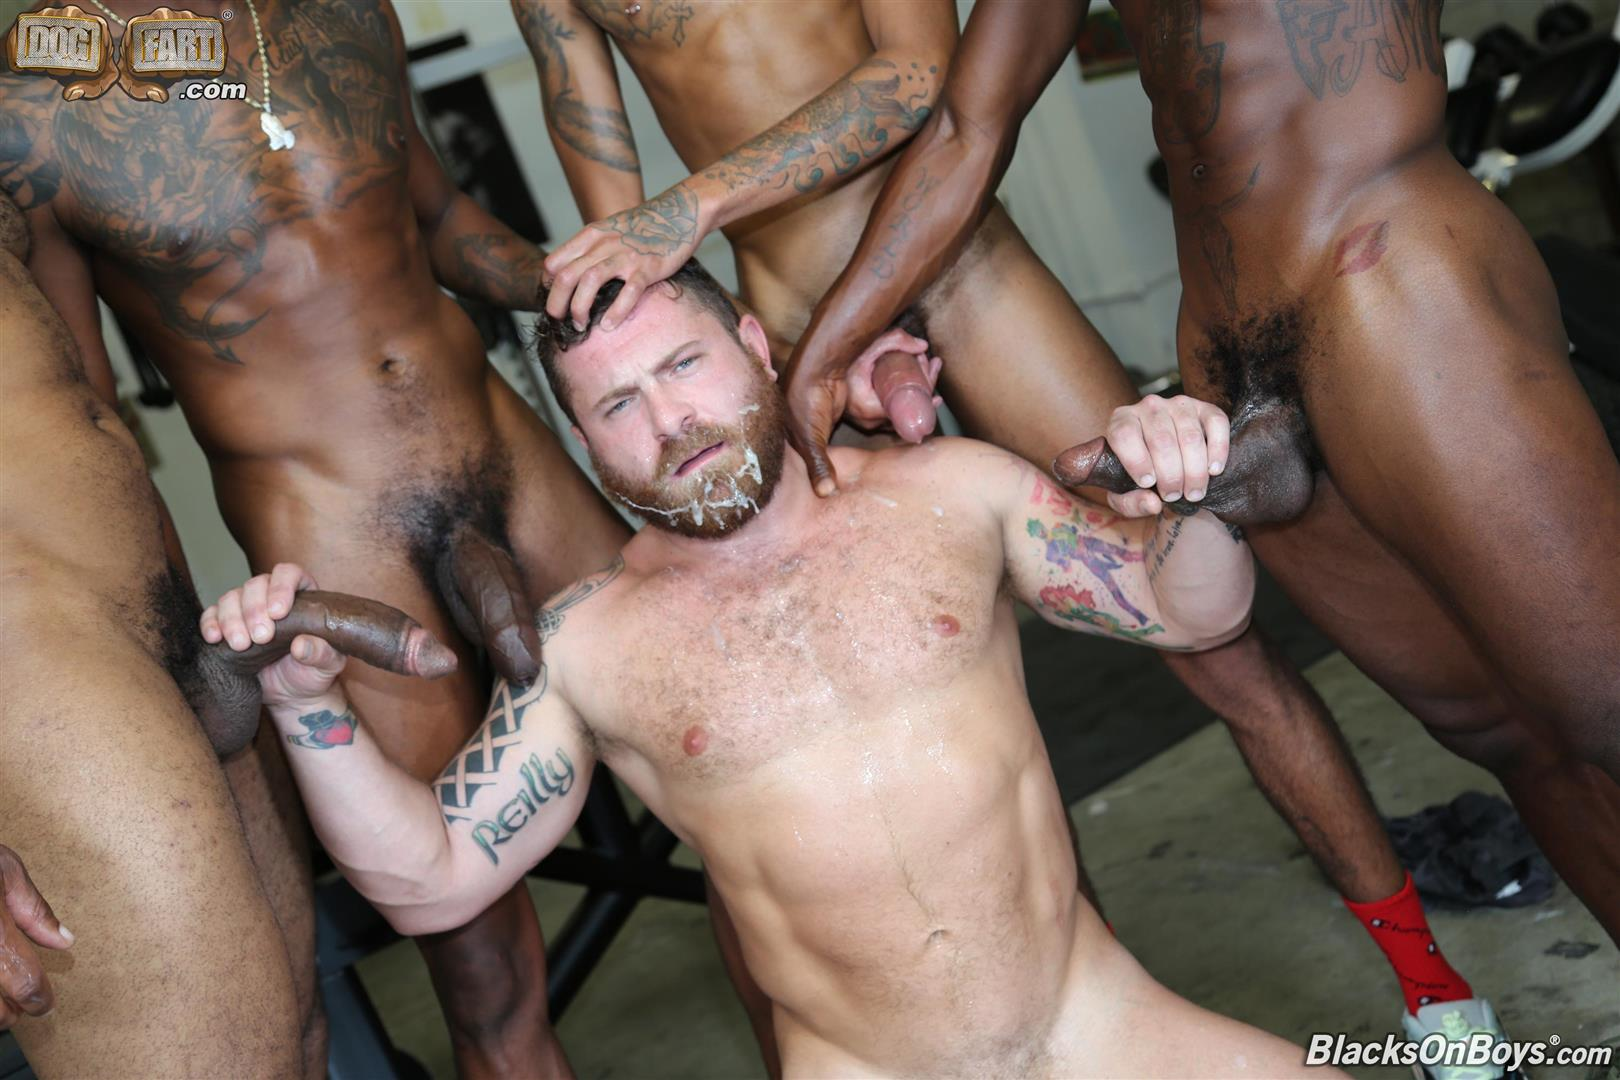 Blacks-On-Boys-Riley-Mitchel-Fame-Knockout-Leon-Redd-Ray-Diesel-Big-Black-Cock-28 Hairy Muscle Daddy Riley Mitchel Takes Four Big Black Cocks Up The Ass